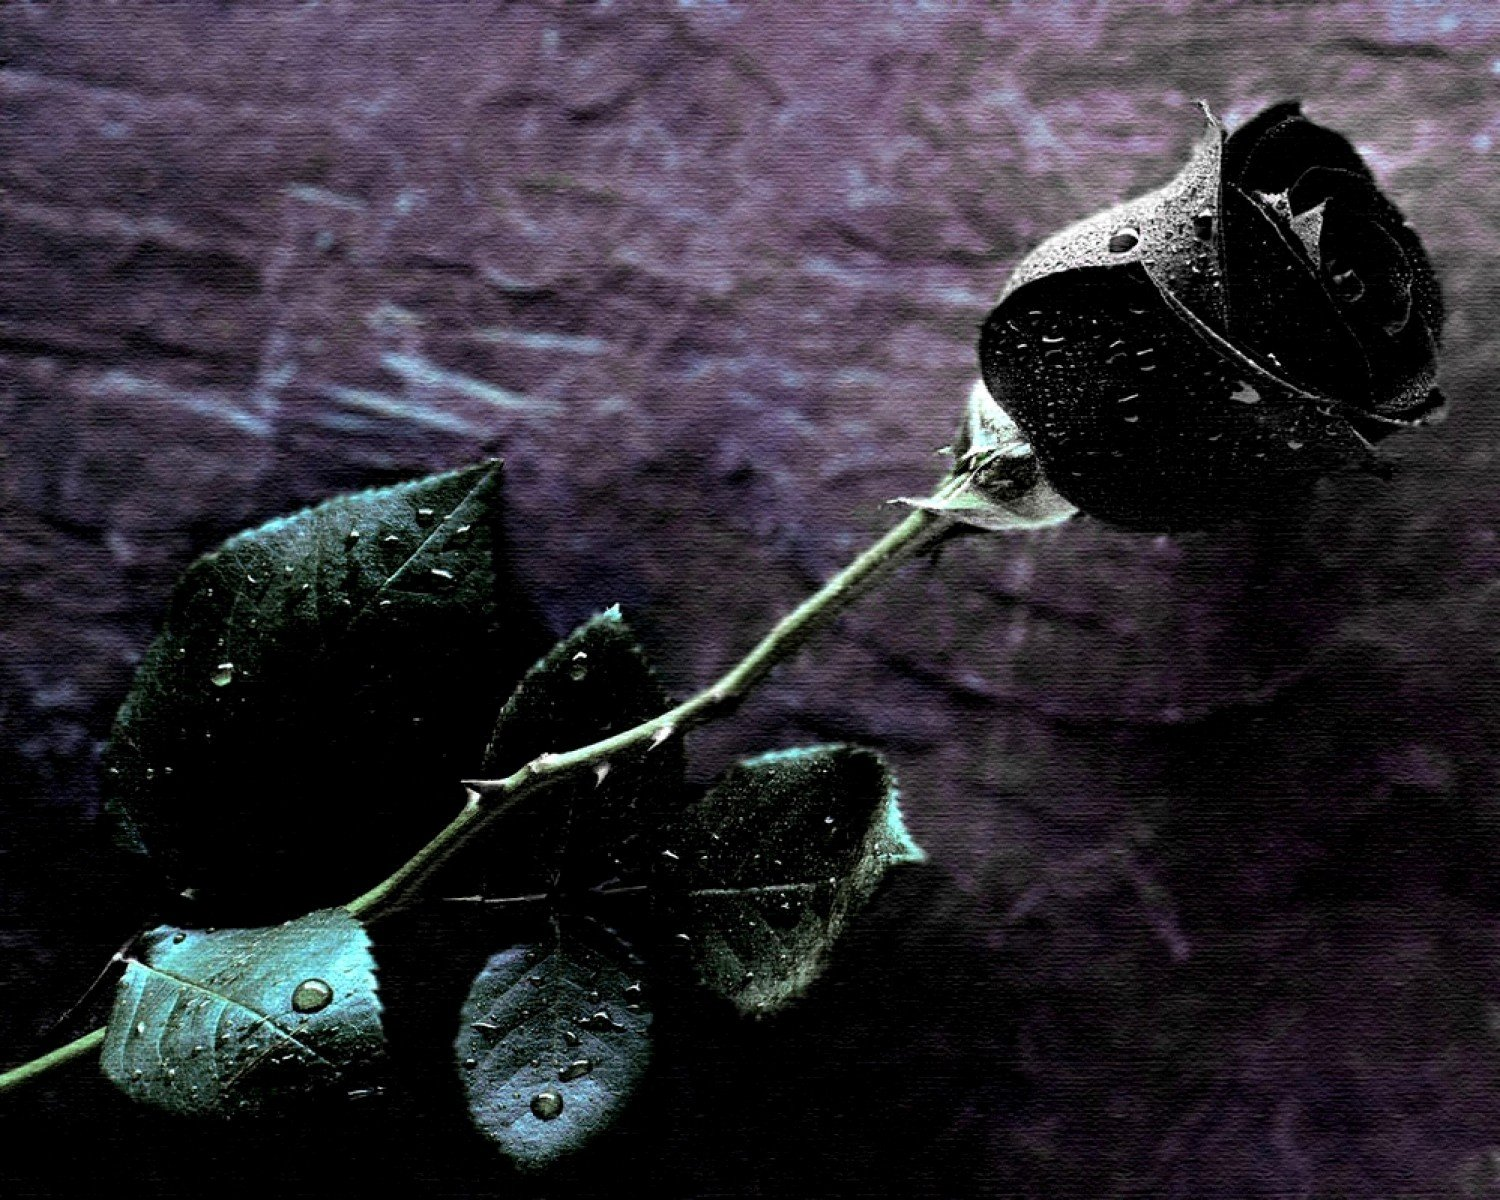 Free Download Flowers Wallpaper Hd Wallpapers Page 0 Wallpaperlepi 1500x1200 For Your Desktop Mobile Tablet Explore 49 Black Rose Wallpaper Images Black Roses Wallpaper Black And White Rose Wallpaper